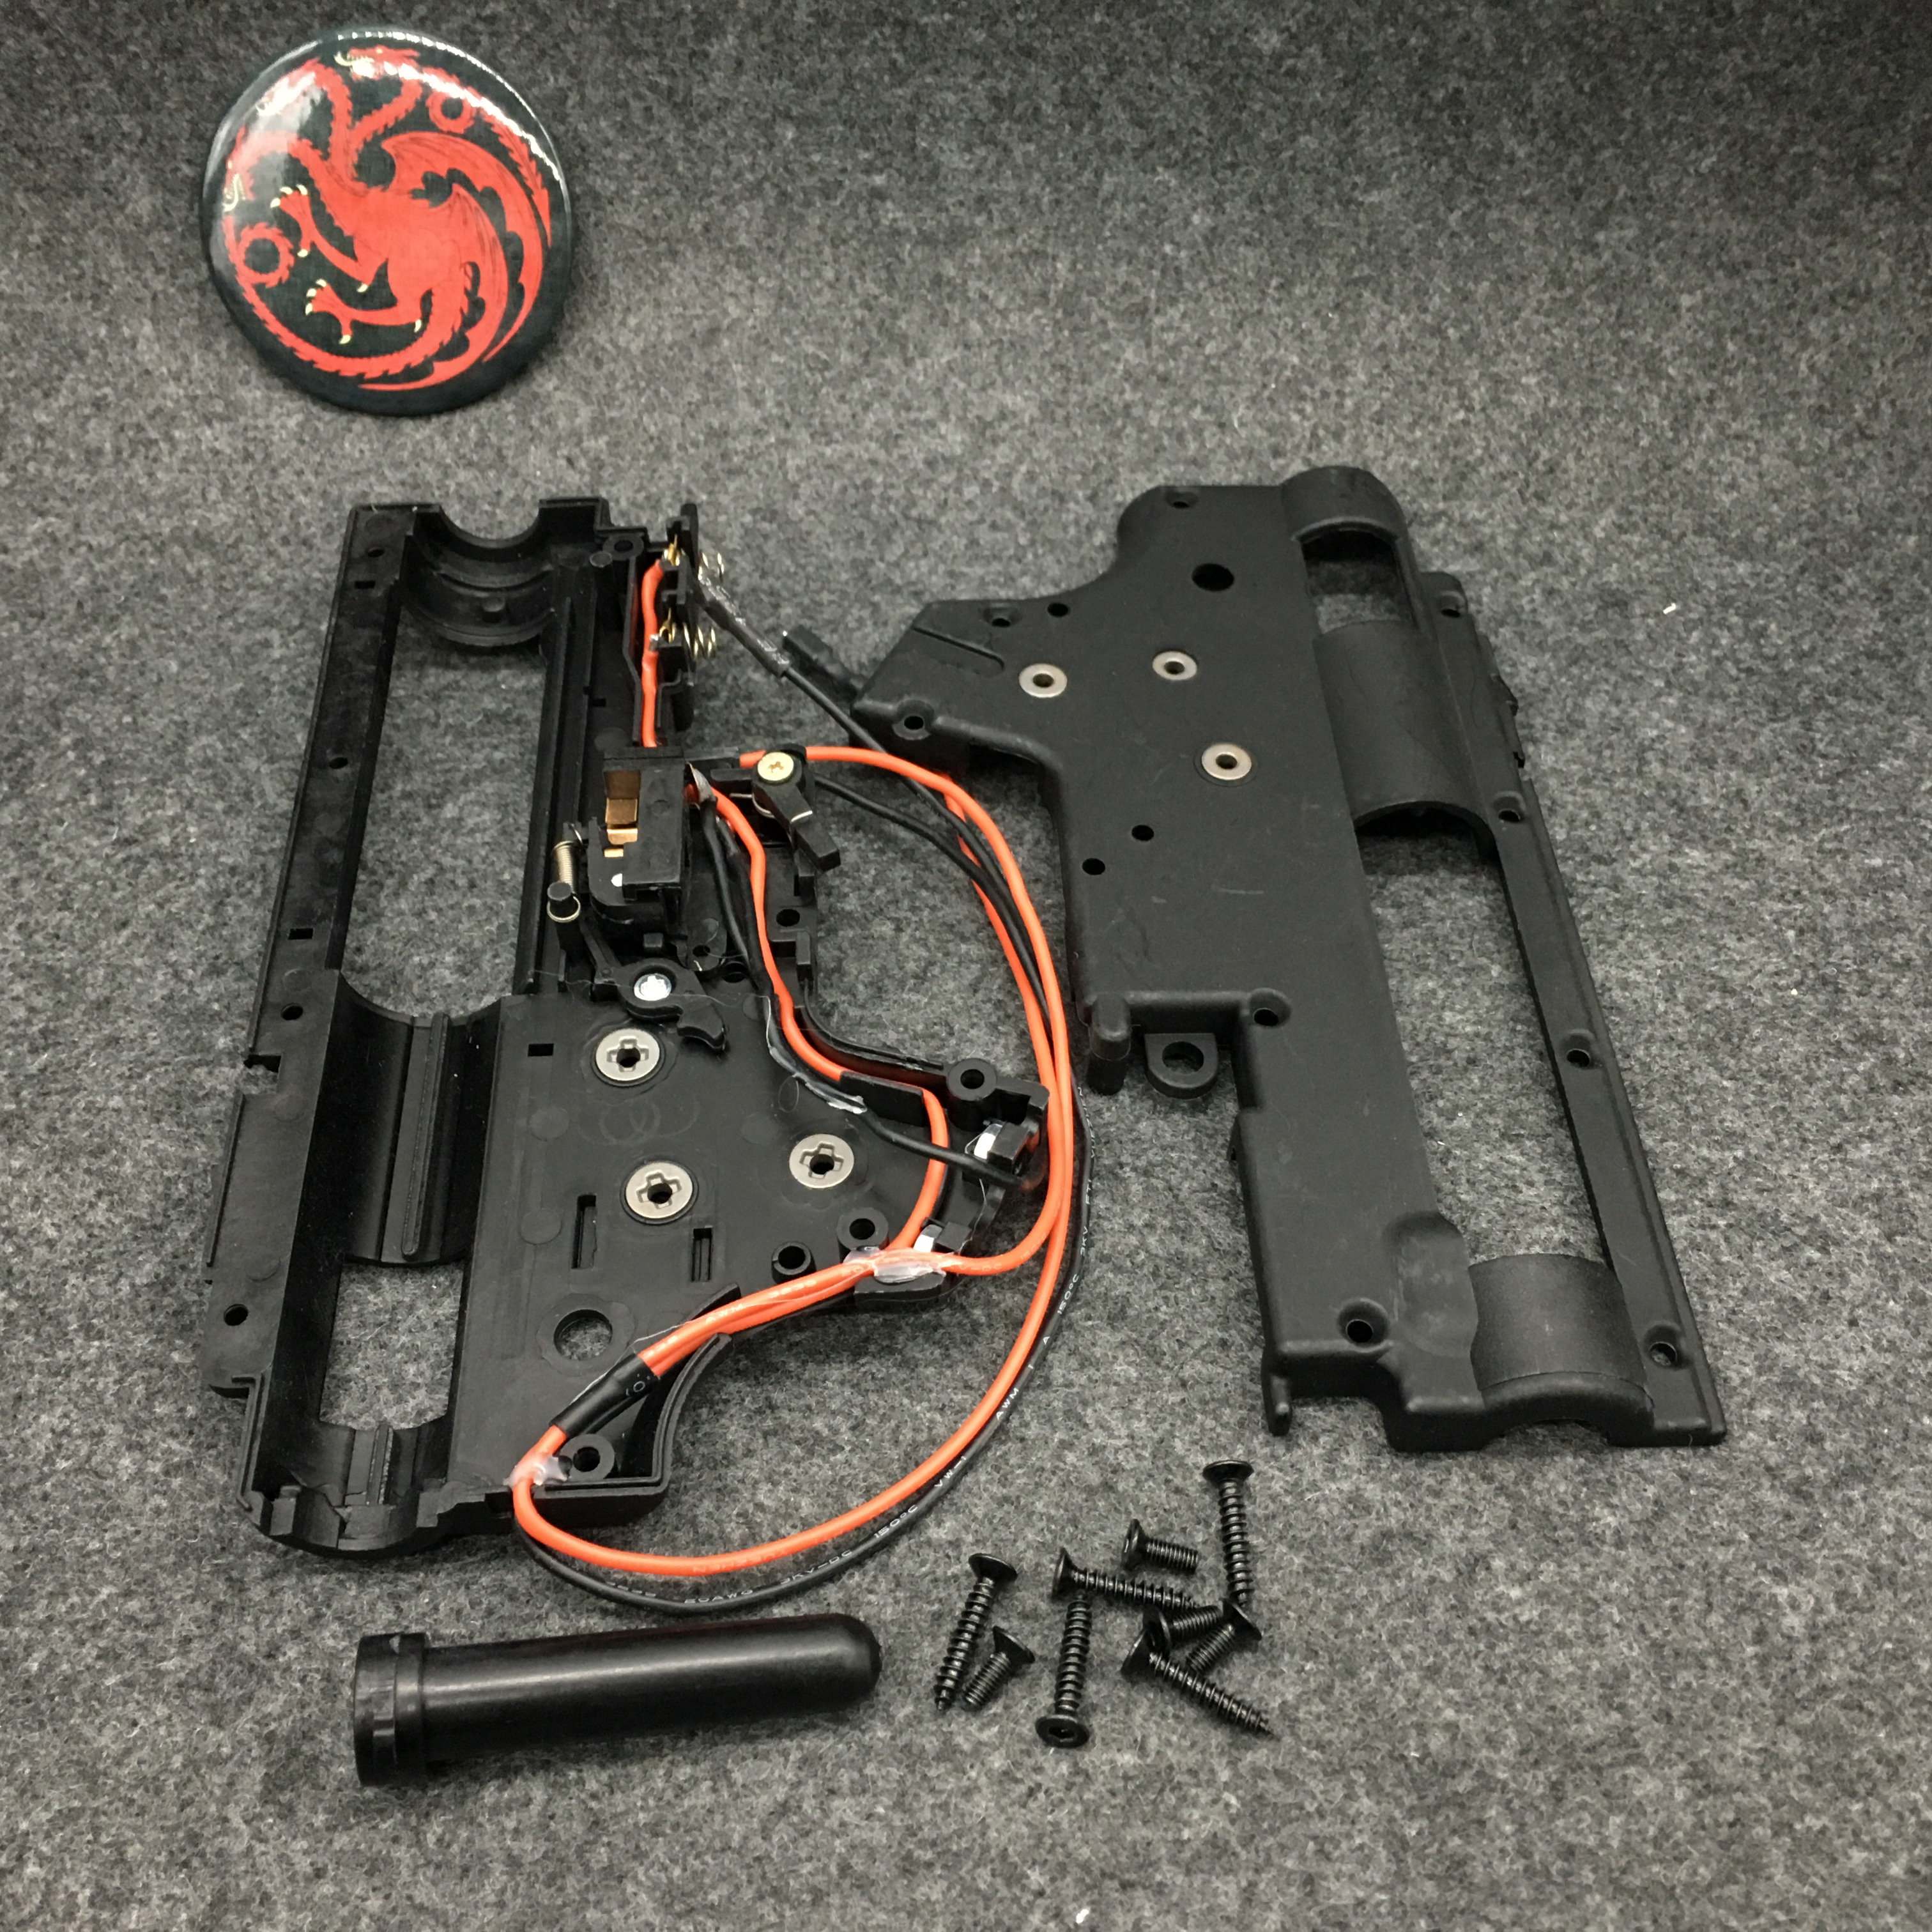 JingMing Gen9 J9 Gen10 J10 Water Gel Ball Blaster Upgraded Nylon V2 Gearbox Body Shell With Battery Cable Switch